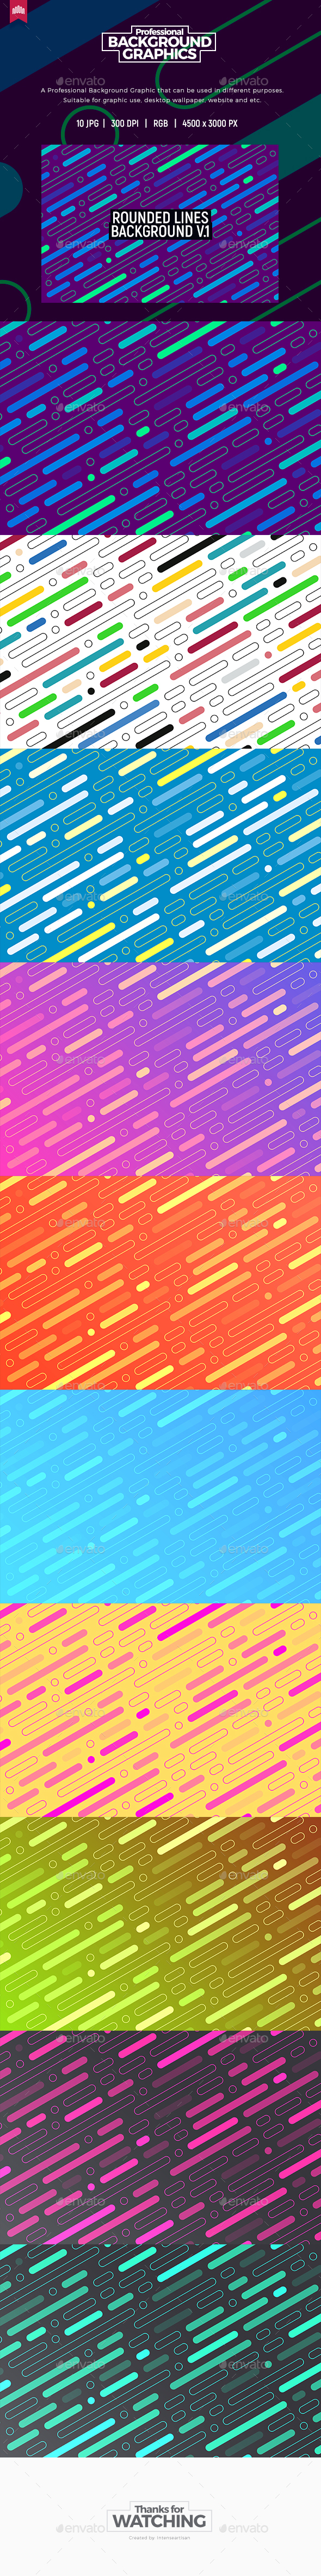 Rounded Lines Background V.1 - Abstract Backgrounds